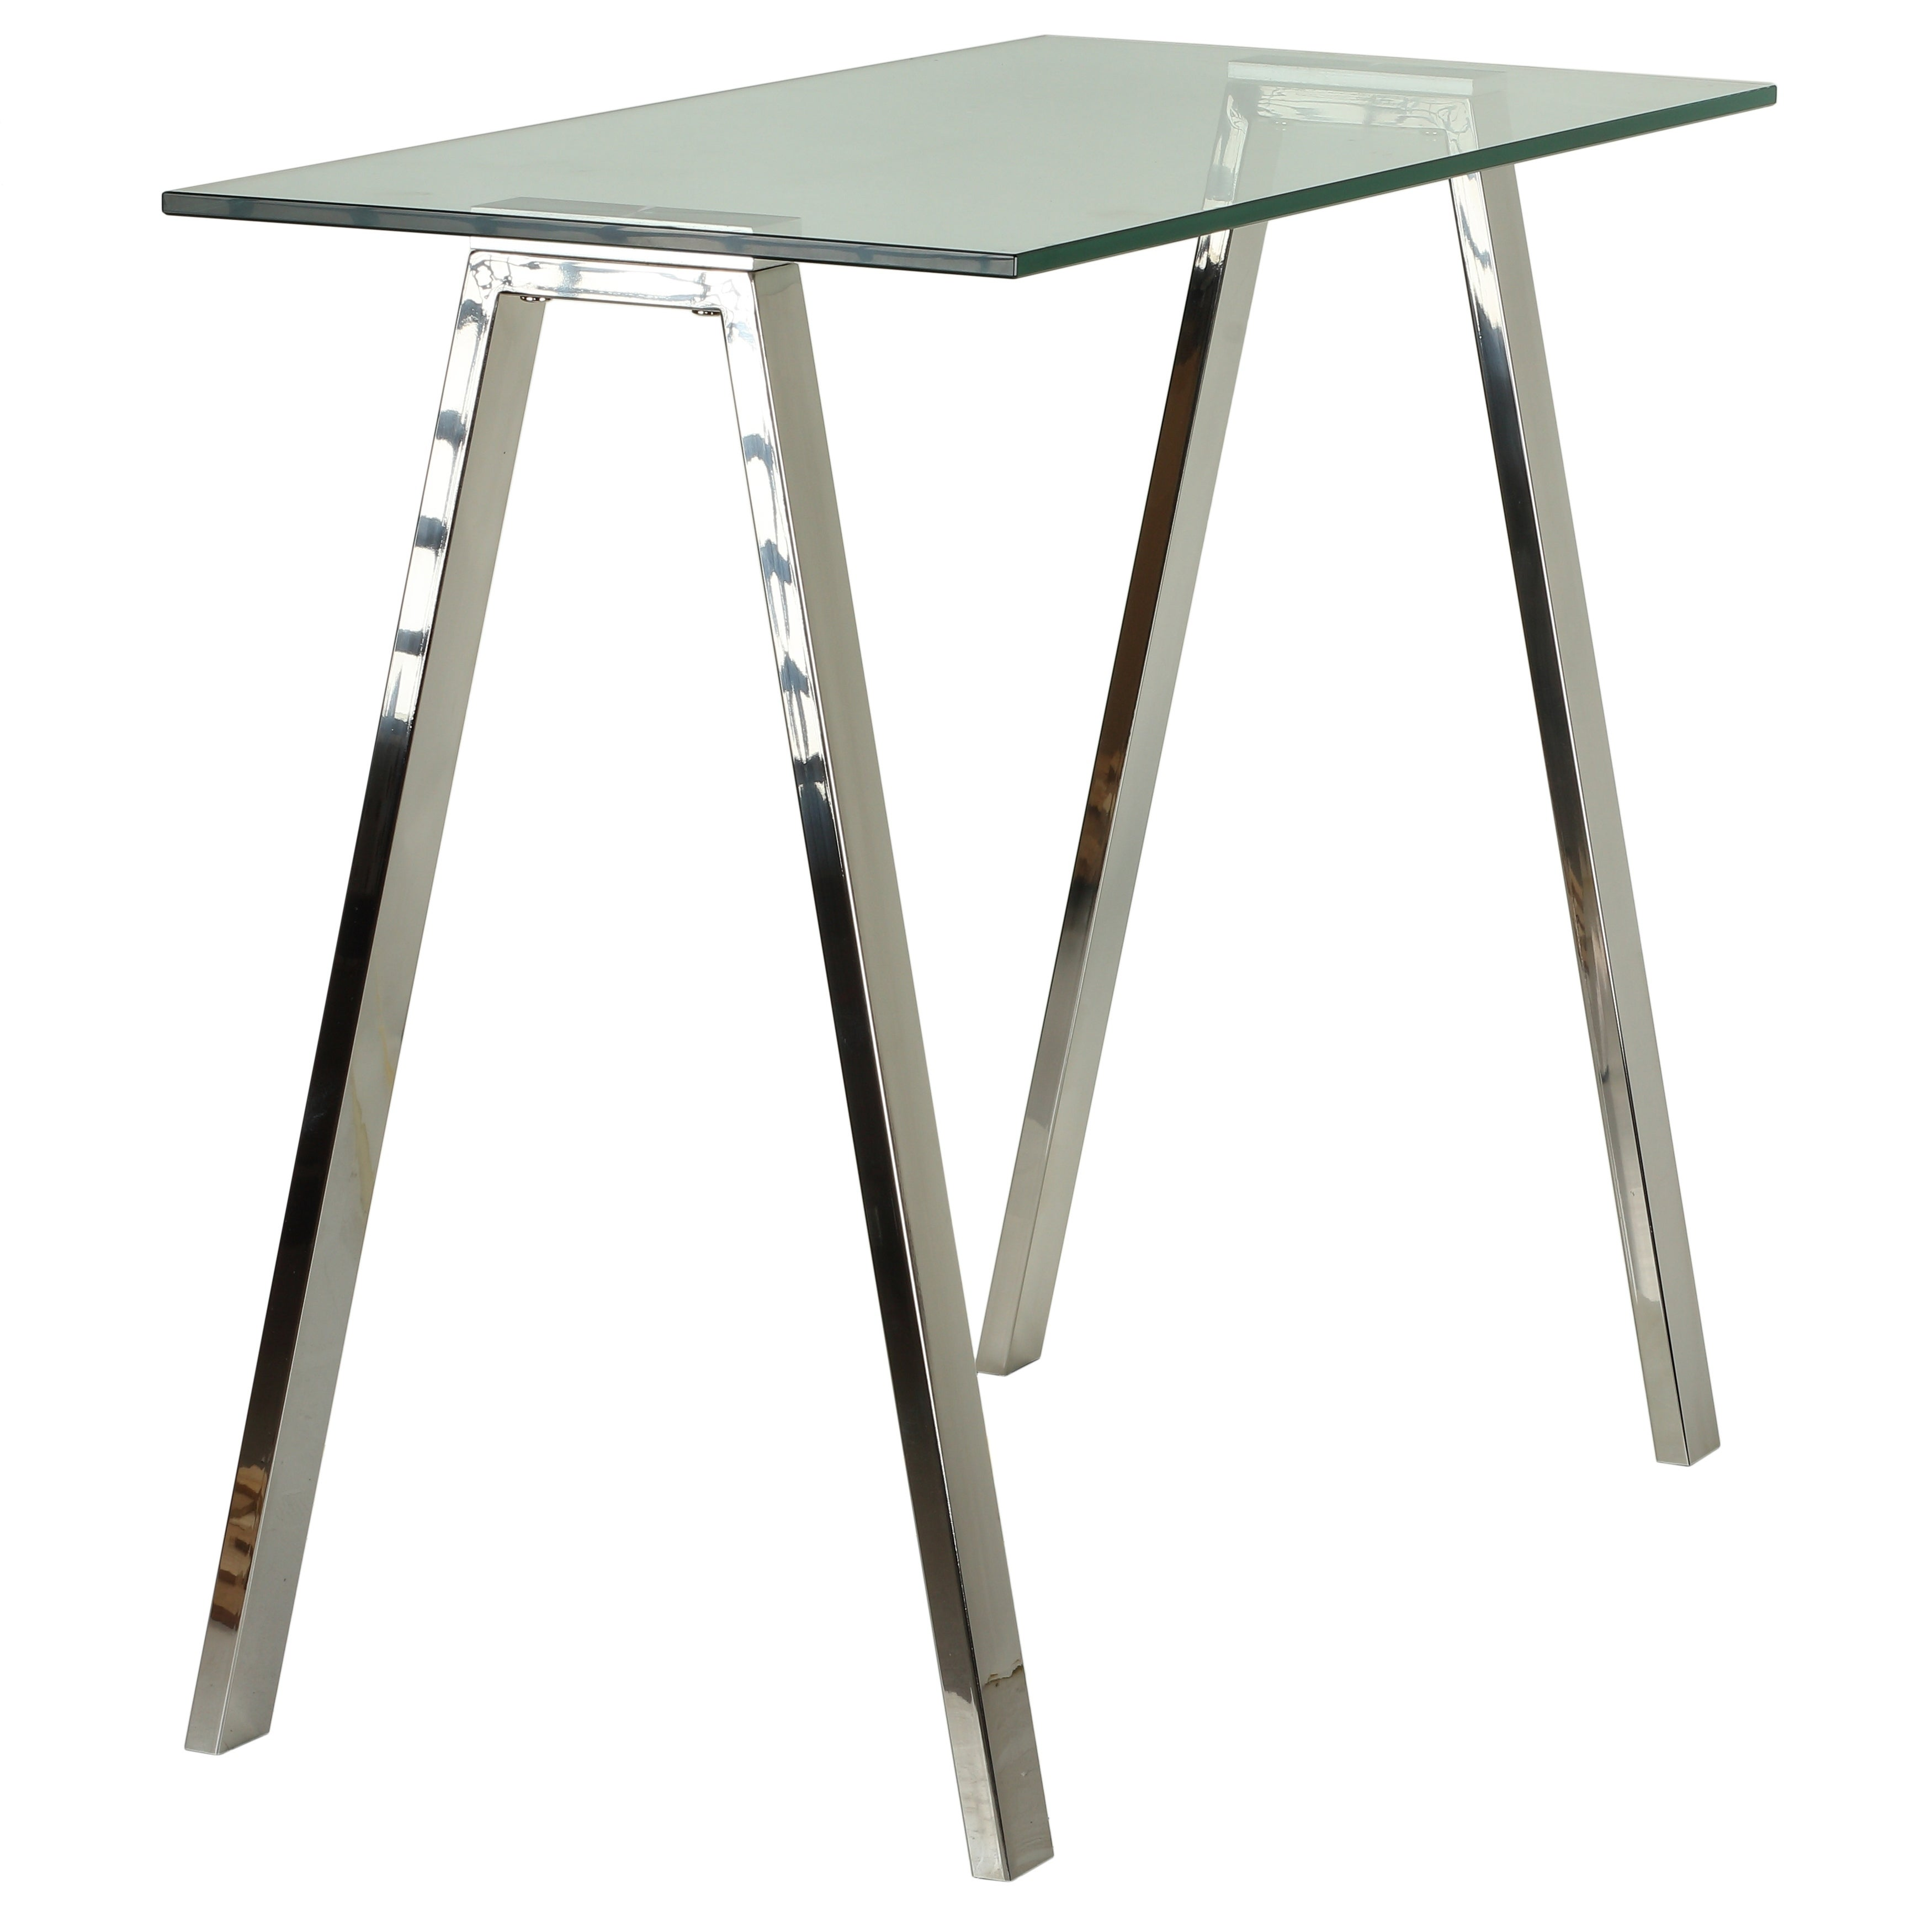 Cortesi home trixie glass top desk console table with stainless cortesi home trixie glass top desk console table with stainless steel frame free shipping today overstock 24309642 gumiabroncs Image collections